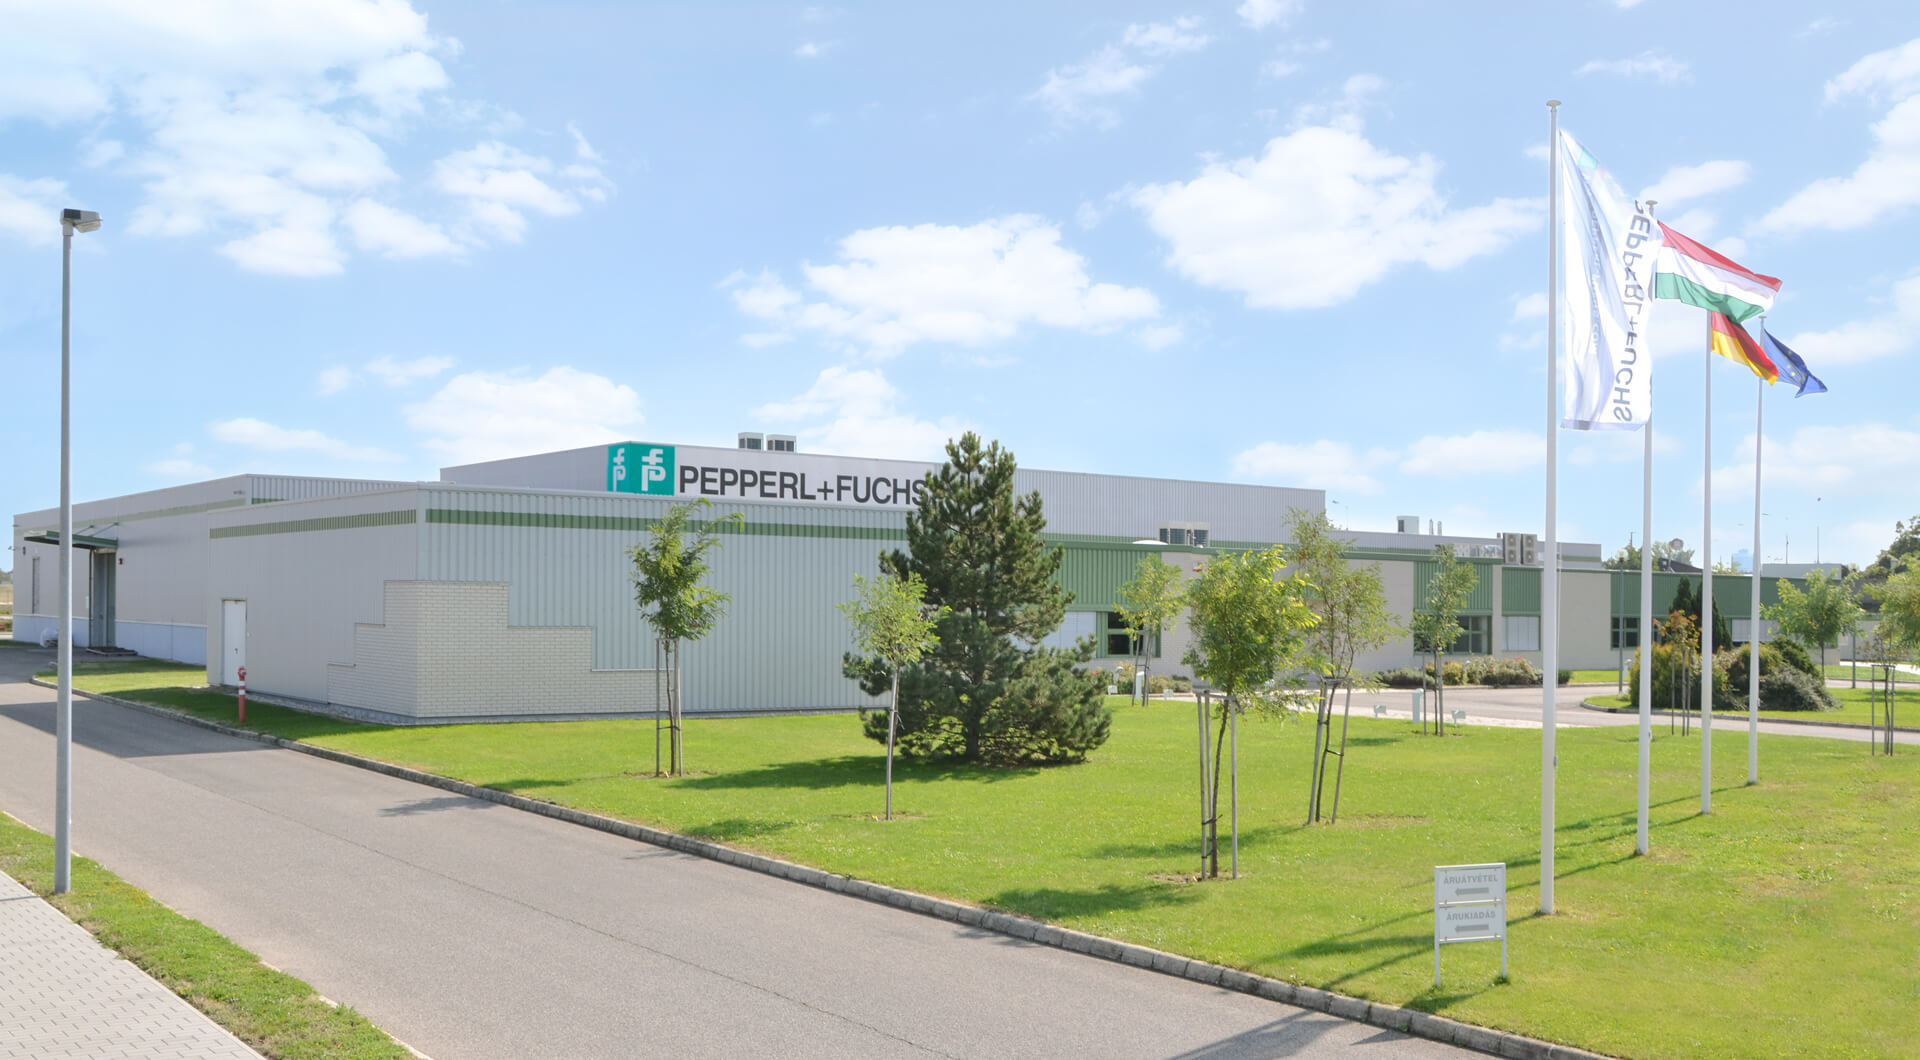 cable, Pepperl+Fuchs, conncection, connectivity, sensors, technology, hungary, industry, quality, pepperl, fuchs, vezprem, plant,